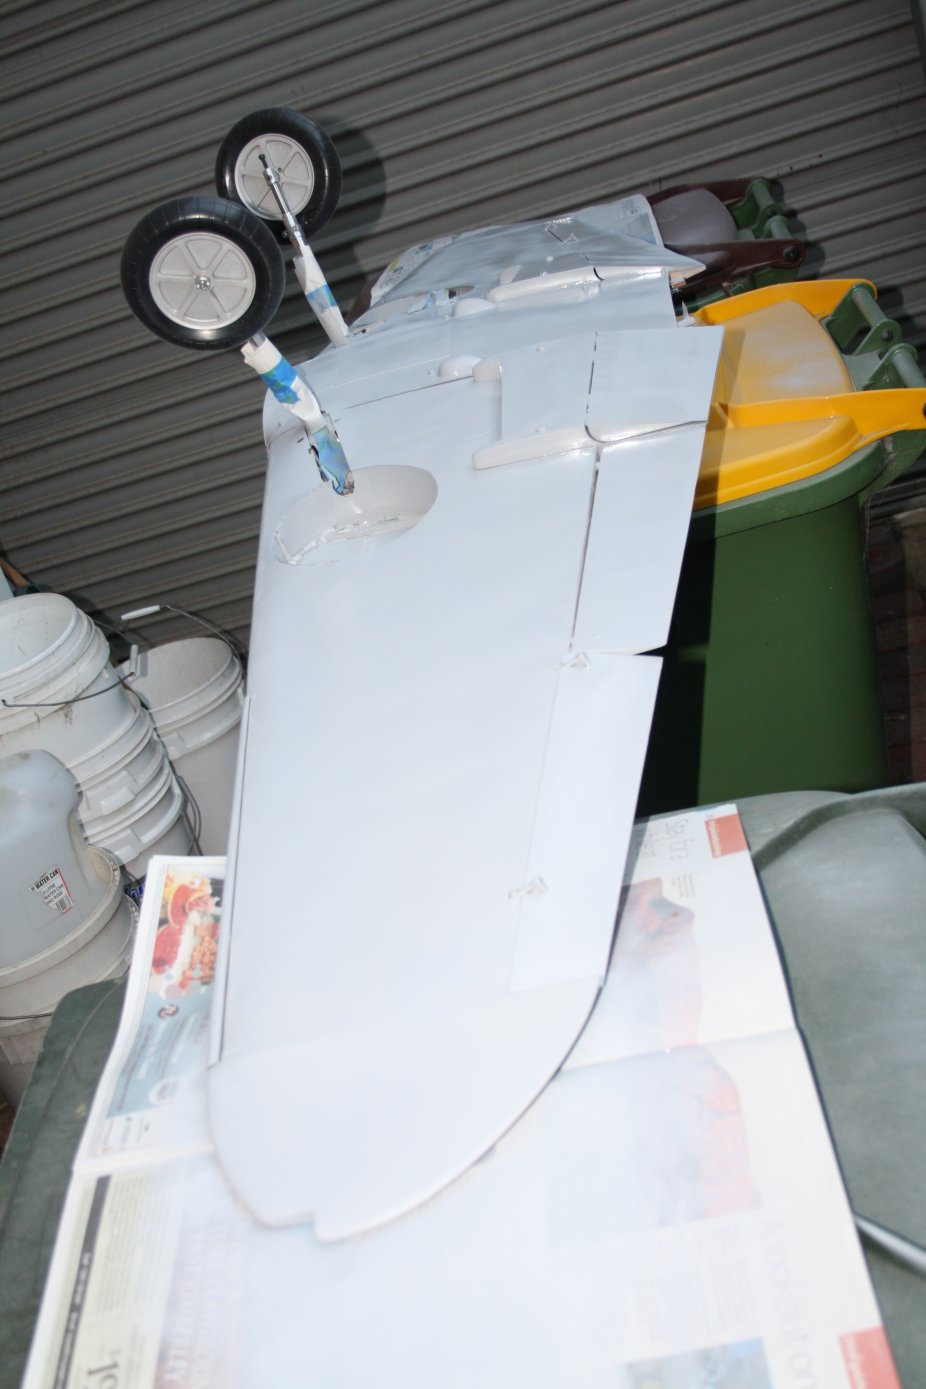 Click image for larger version  Name:2014_04_08 03 Primer Wing.JPG Views:61 Size:131.6 KB ID:1985229